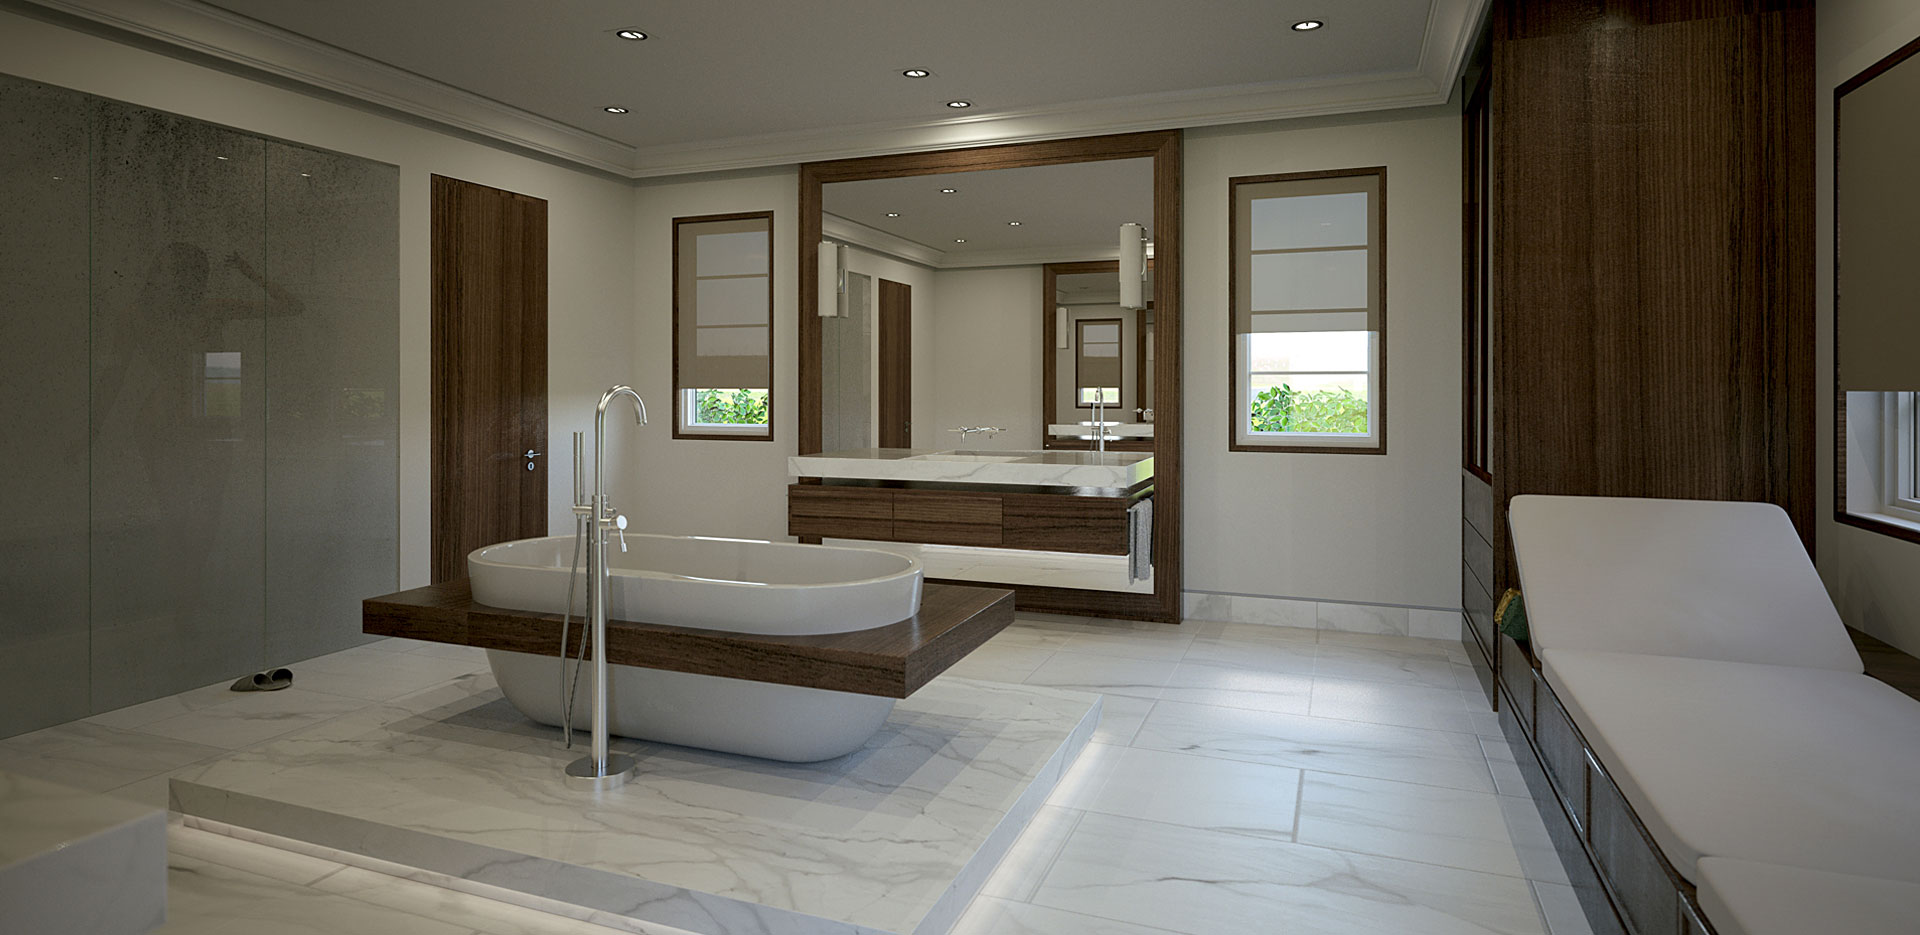 Architectural Rendering Master Bath